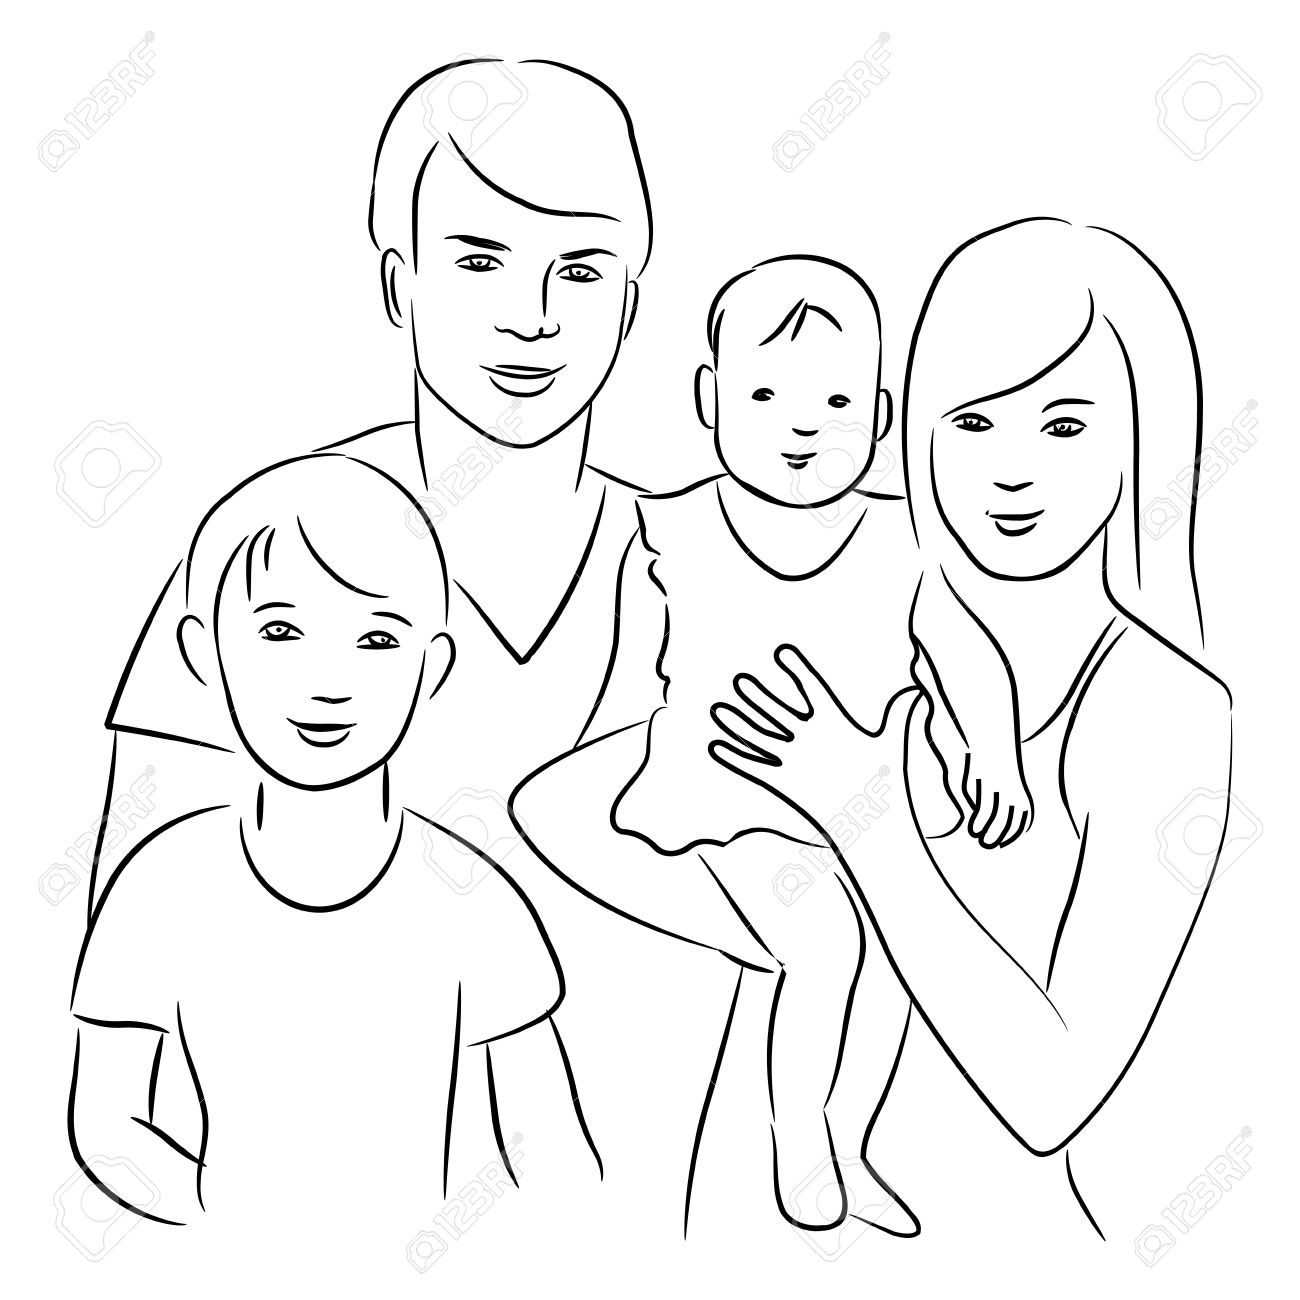 Family - sketch drawing. Stock Vector - 14970009